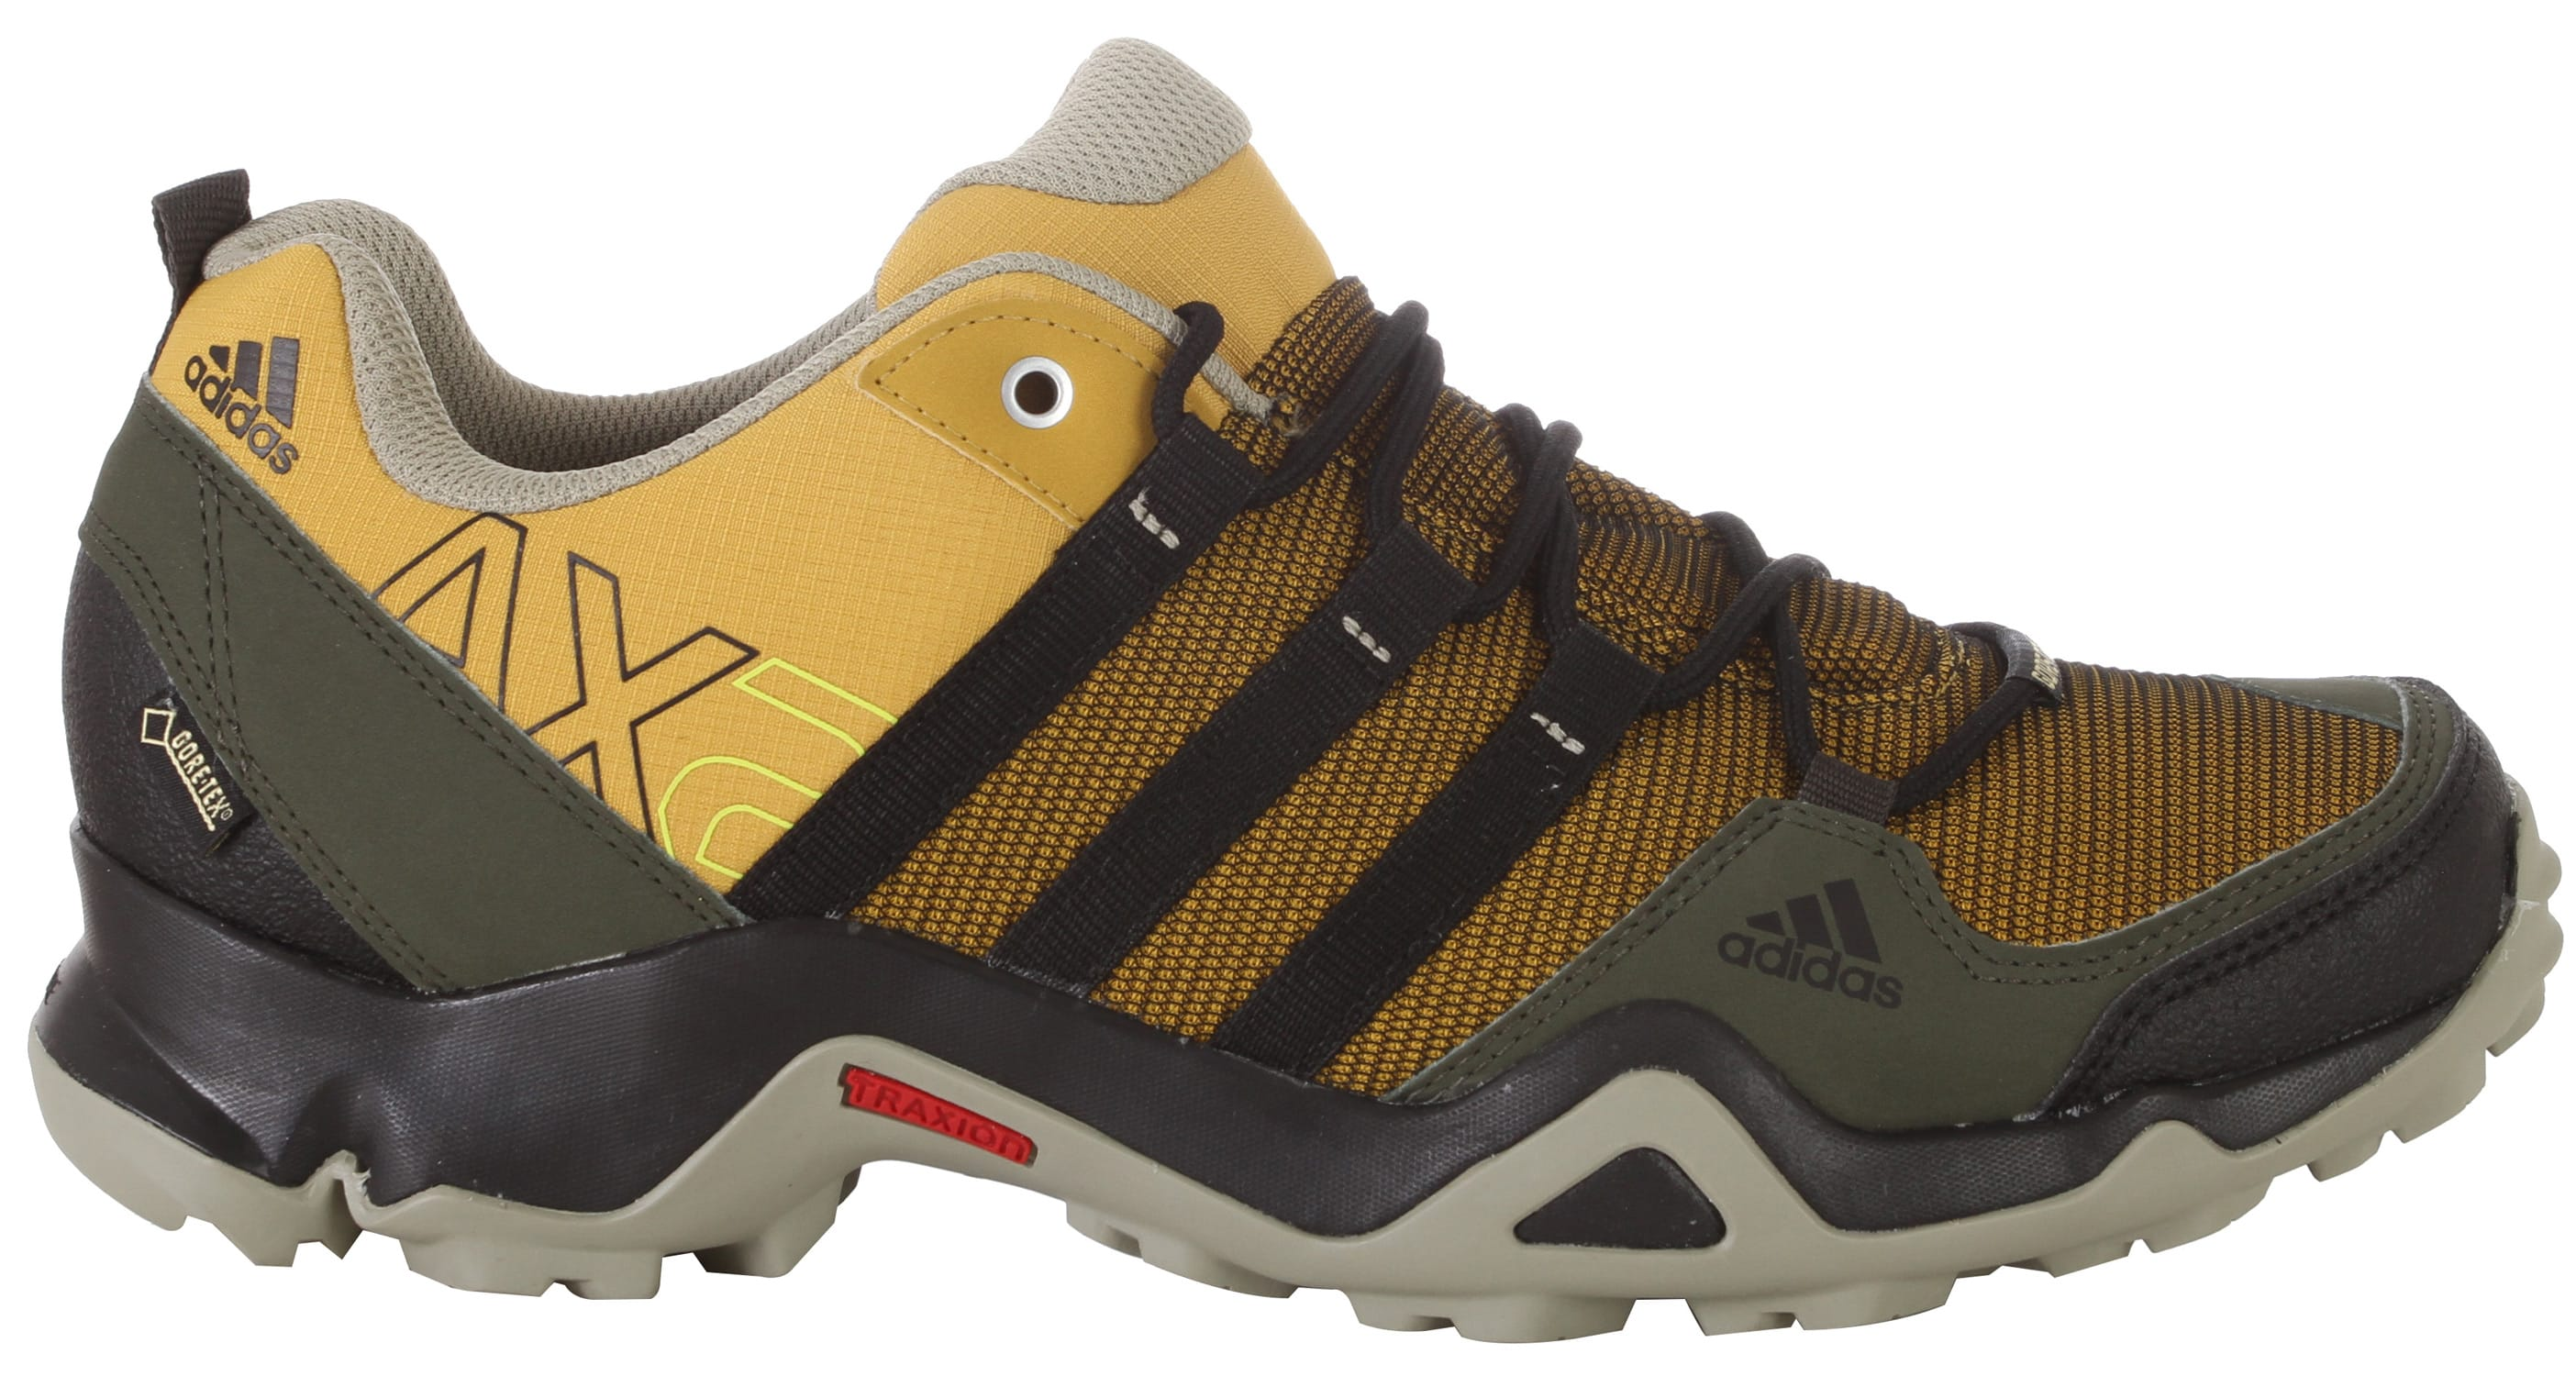 Adidas AX2 GTX Hiking Shoes - thumbnail 1